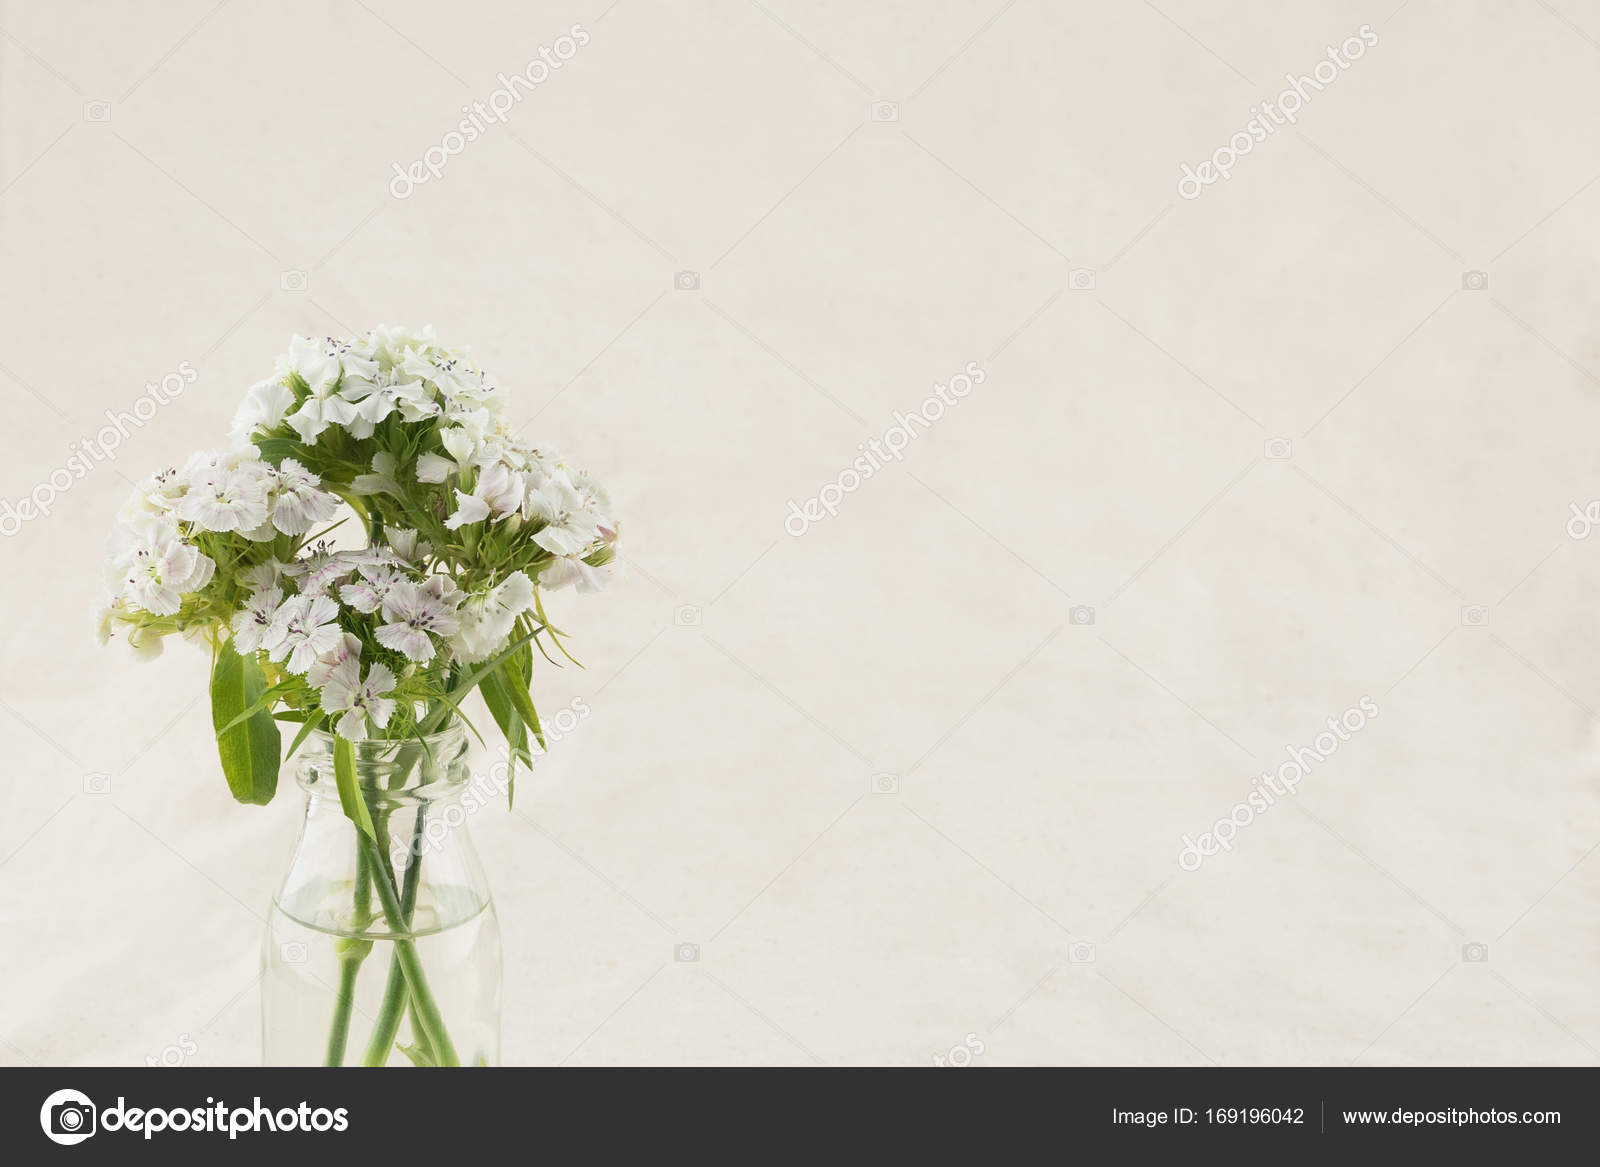 White Sweet William Flowers In Vase With Copy Space Stock Photo